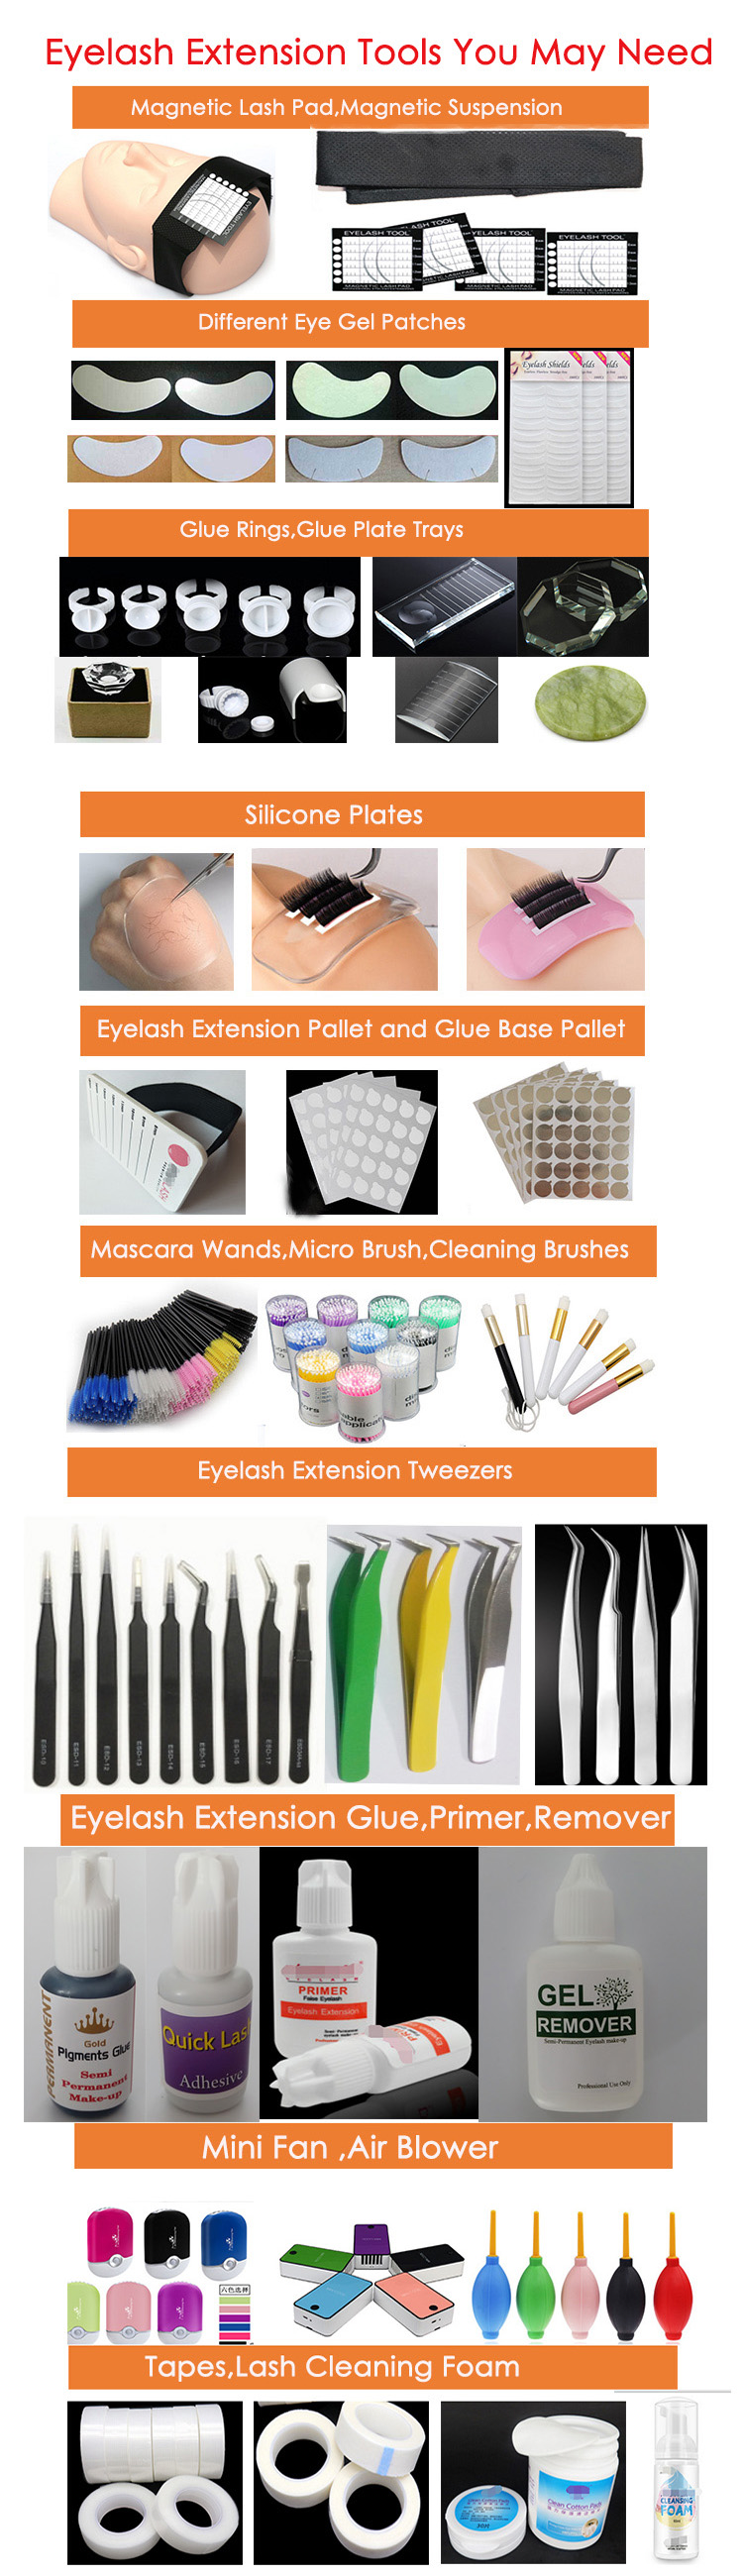 eyelash extension tools wholesale supply China.jpg